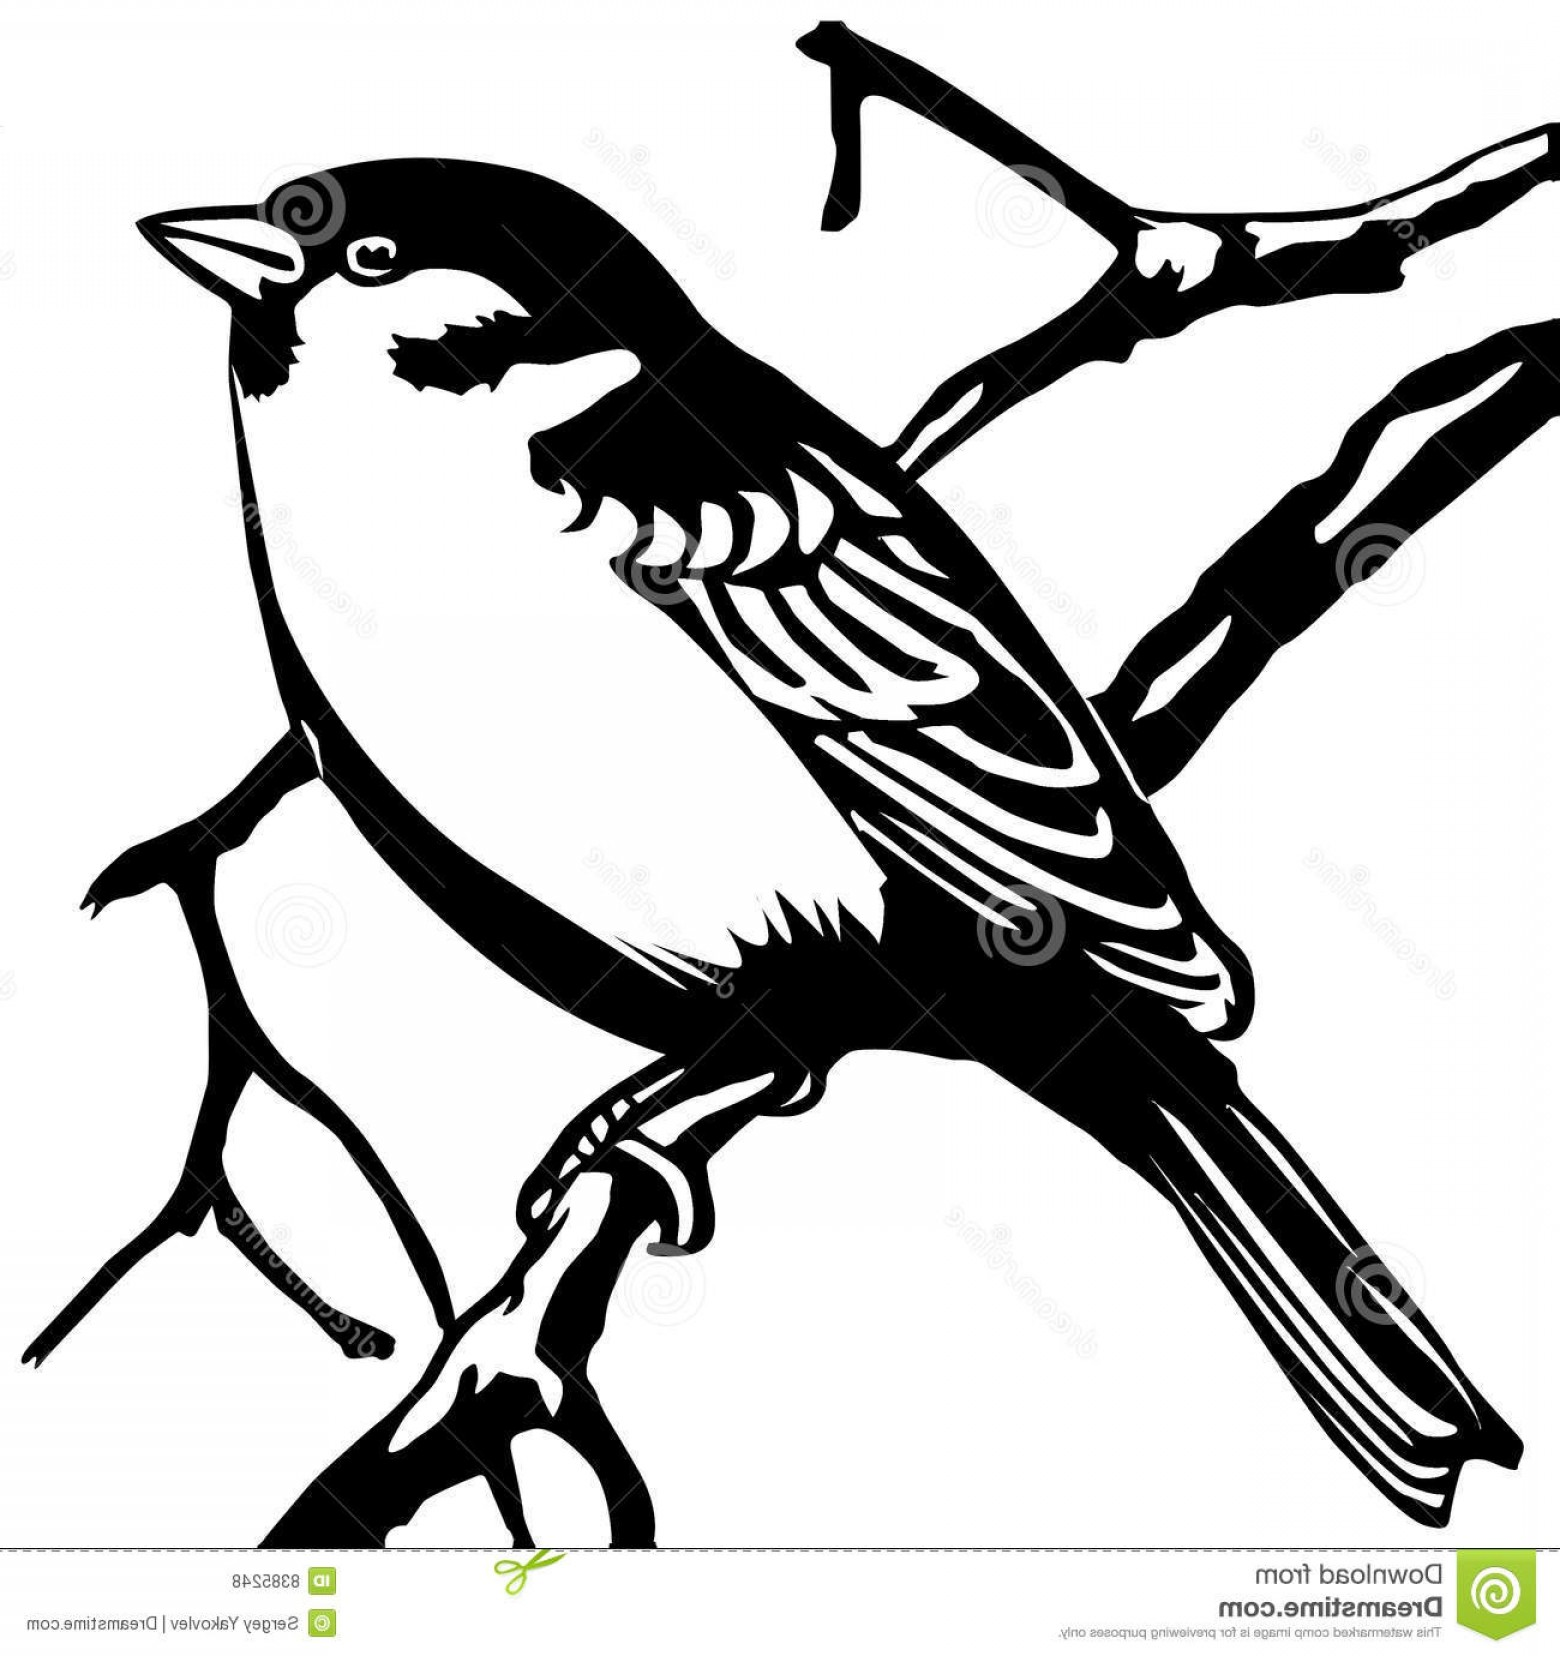 1560x1656 Royalty Free Stock Photos Vector Silhouette Sparrow Image Arenawp